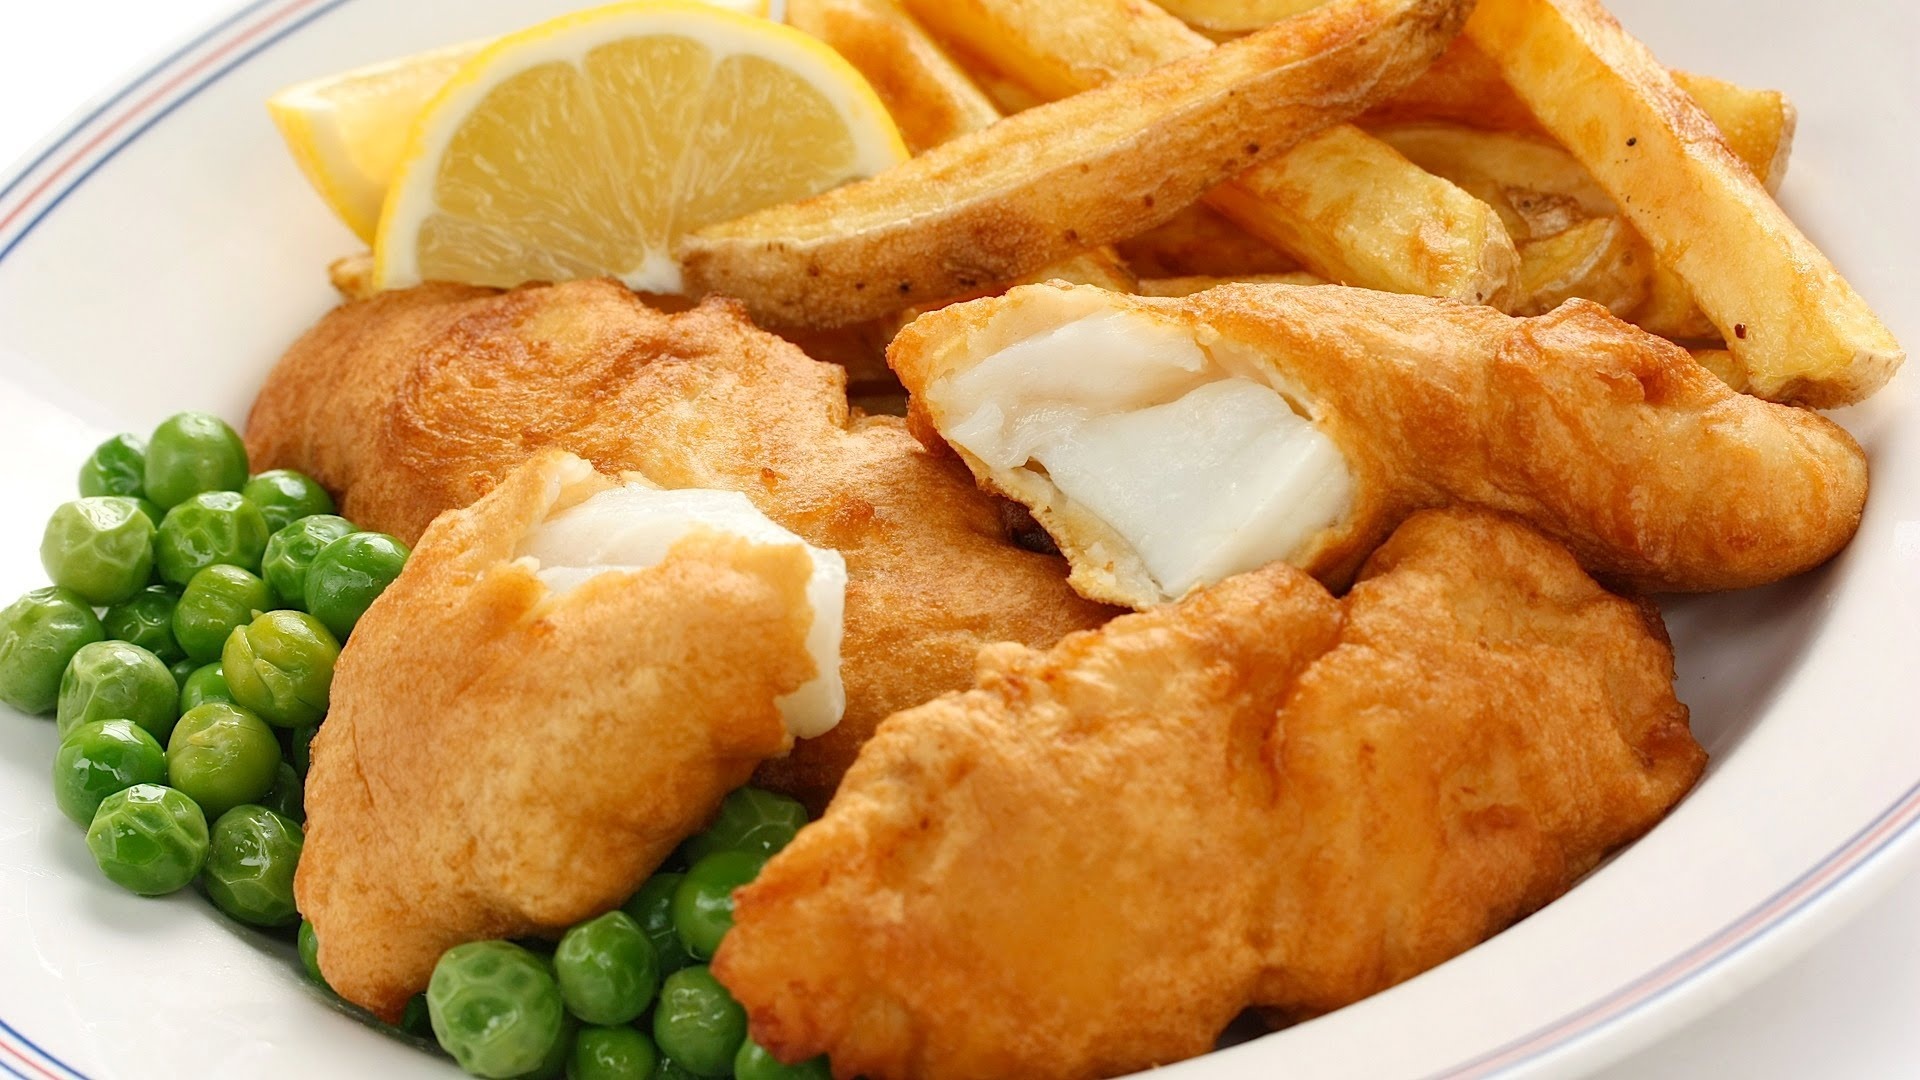 Fish n chips hd wallpapers for Batter fried fish